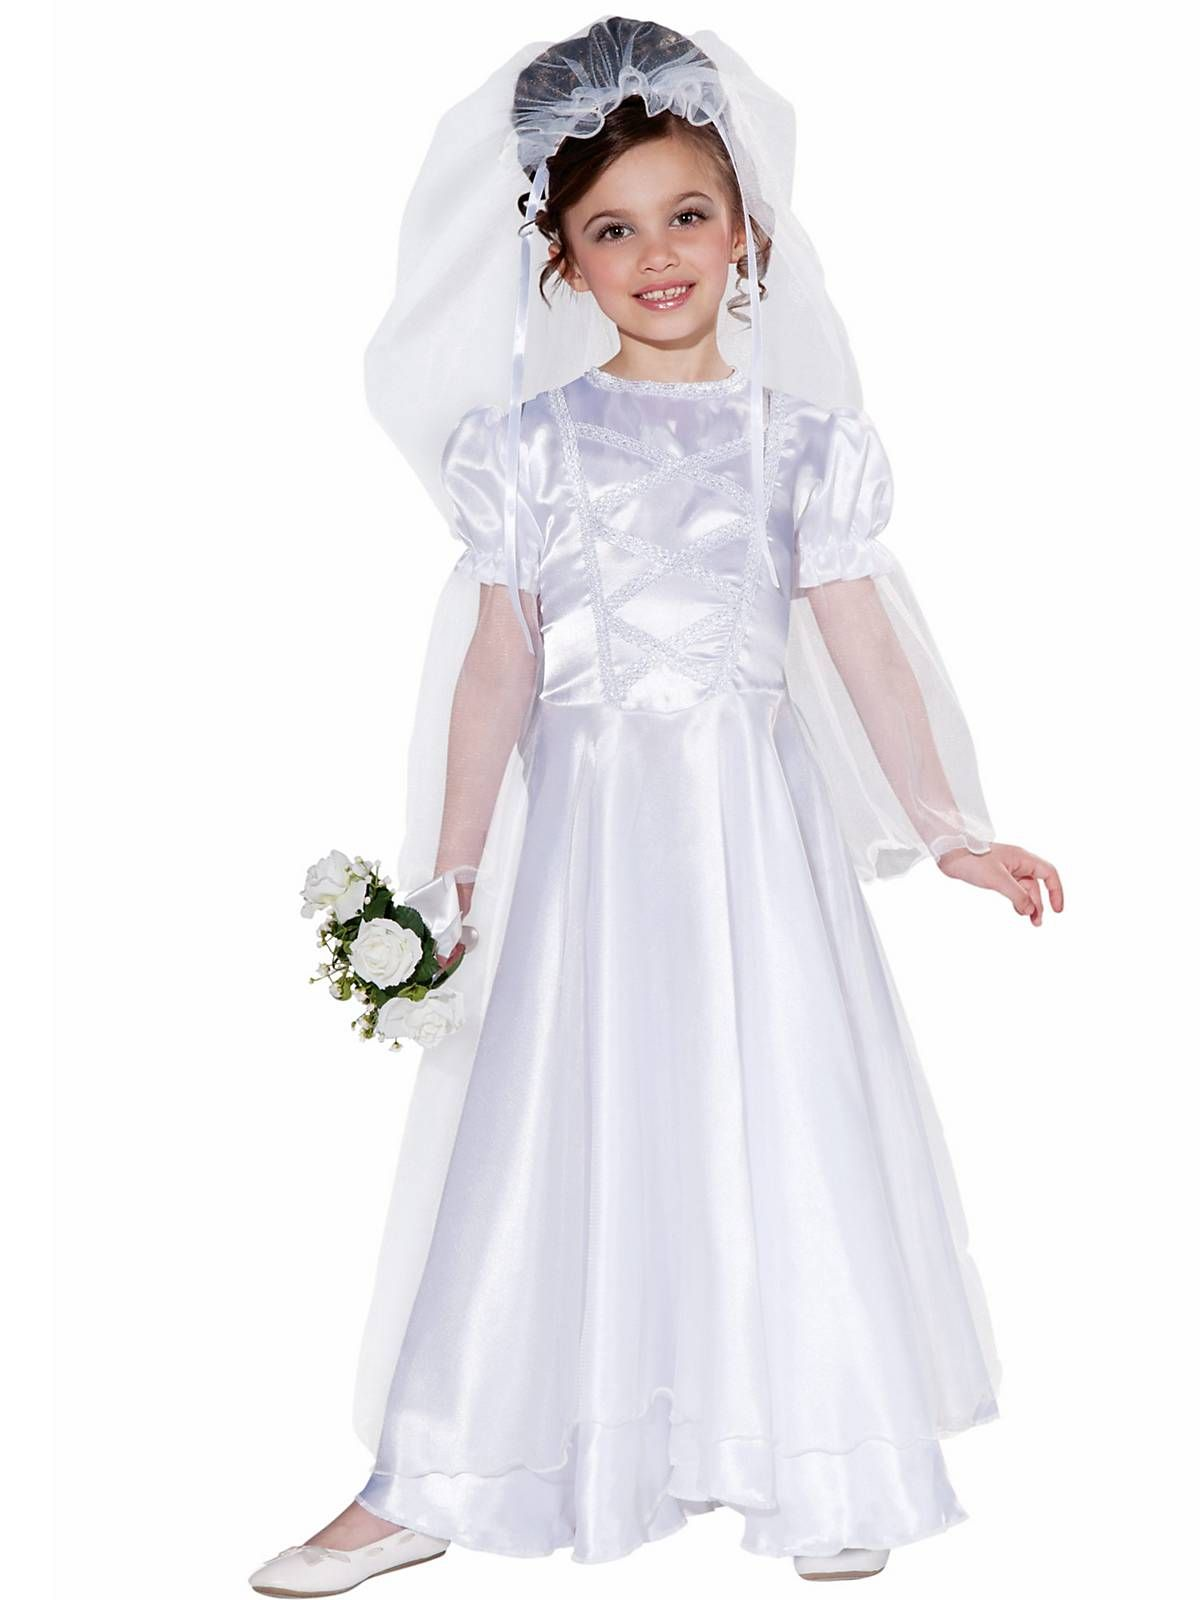 Wedding Belle Girls Costume